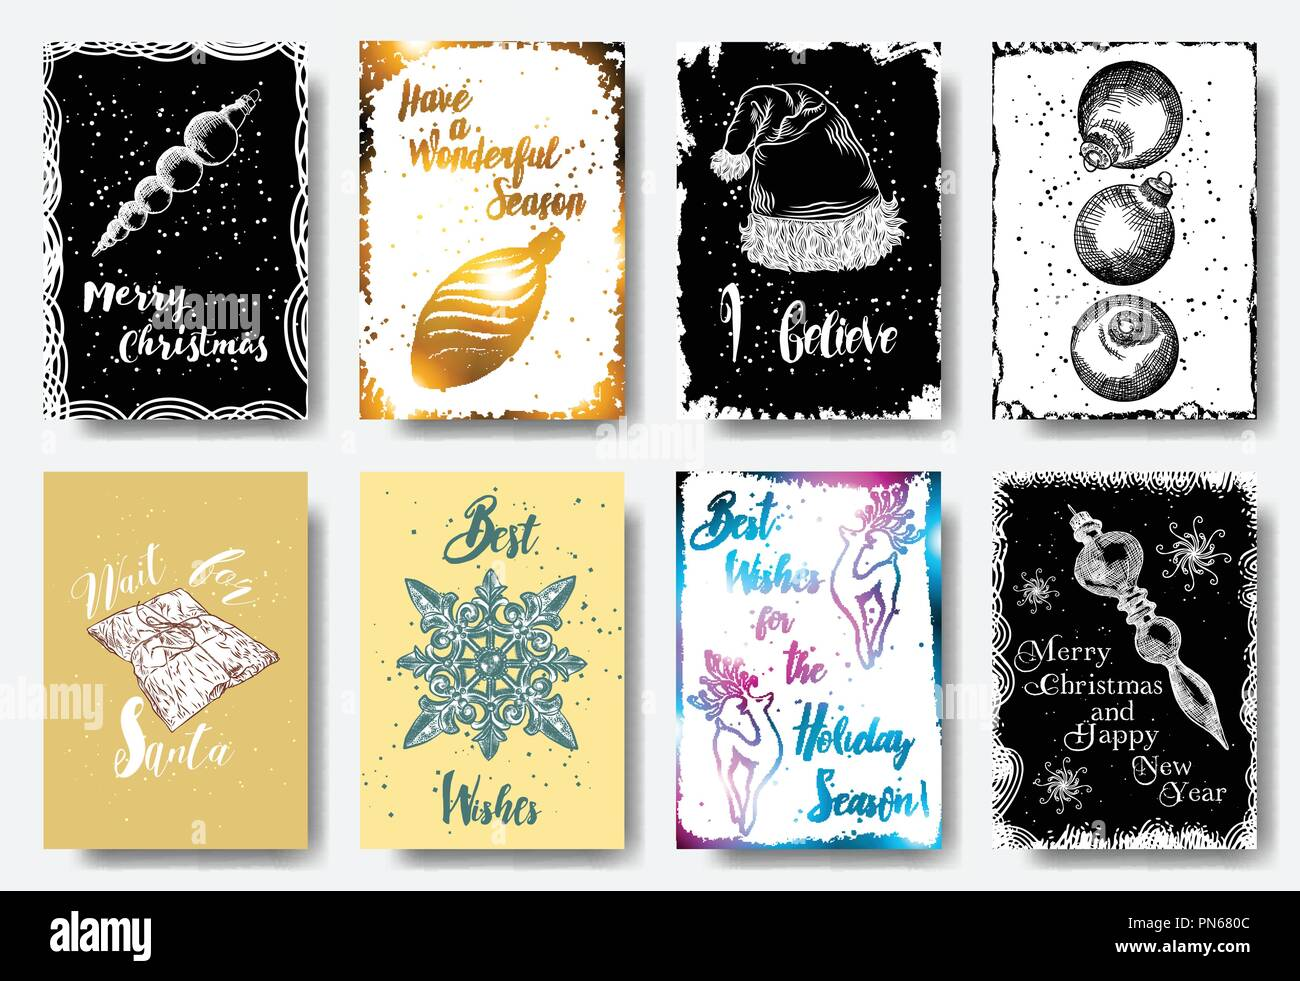 Set of 8 Merry Christmas and Happy New Year hand drawn greeting ...